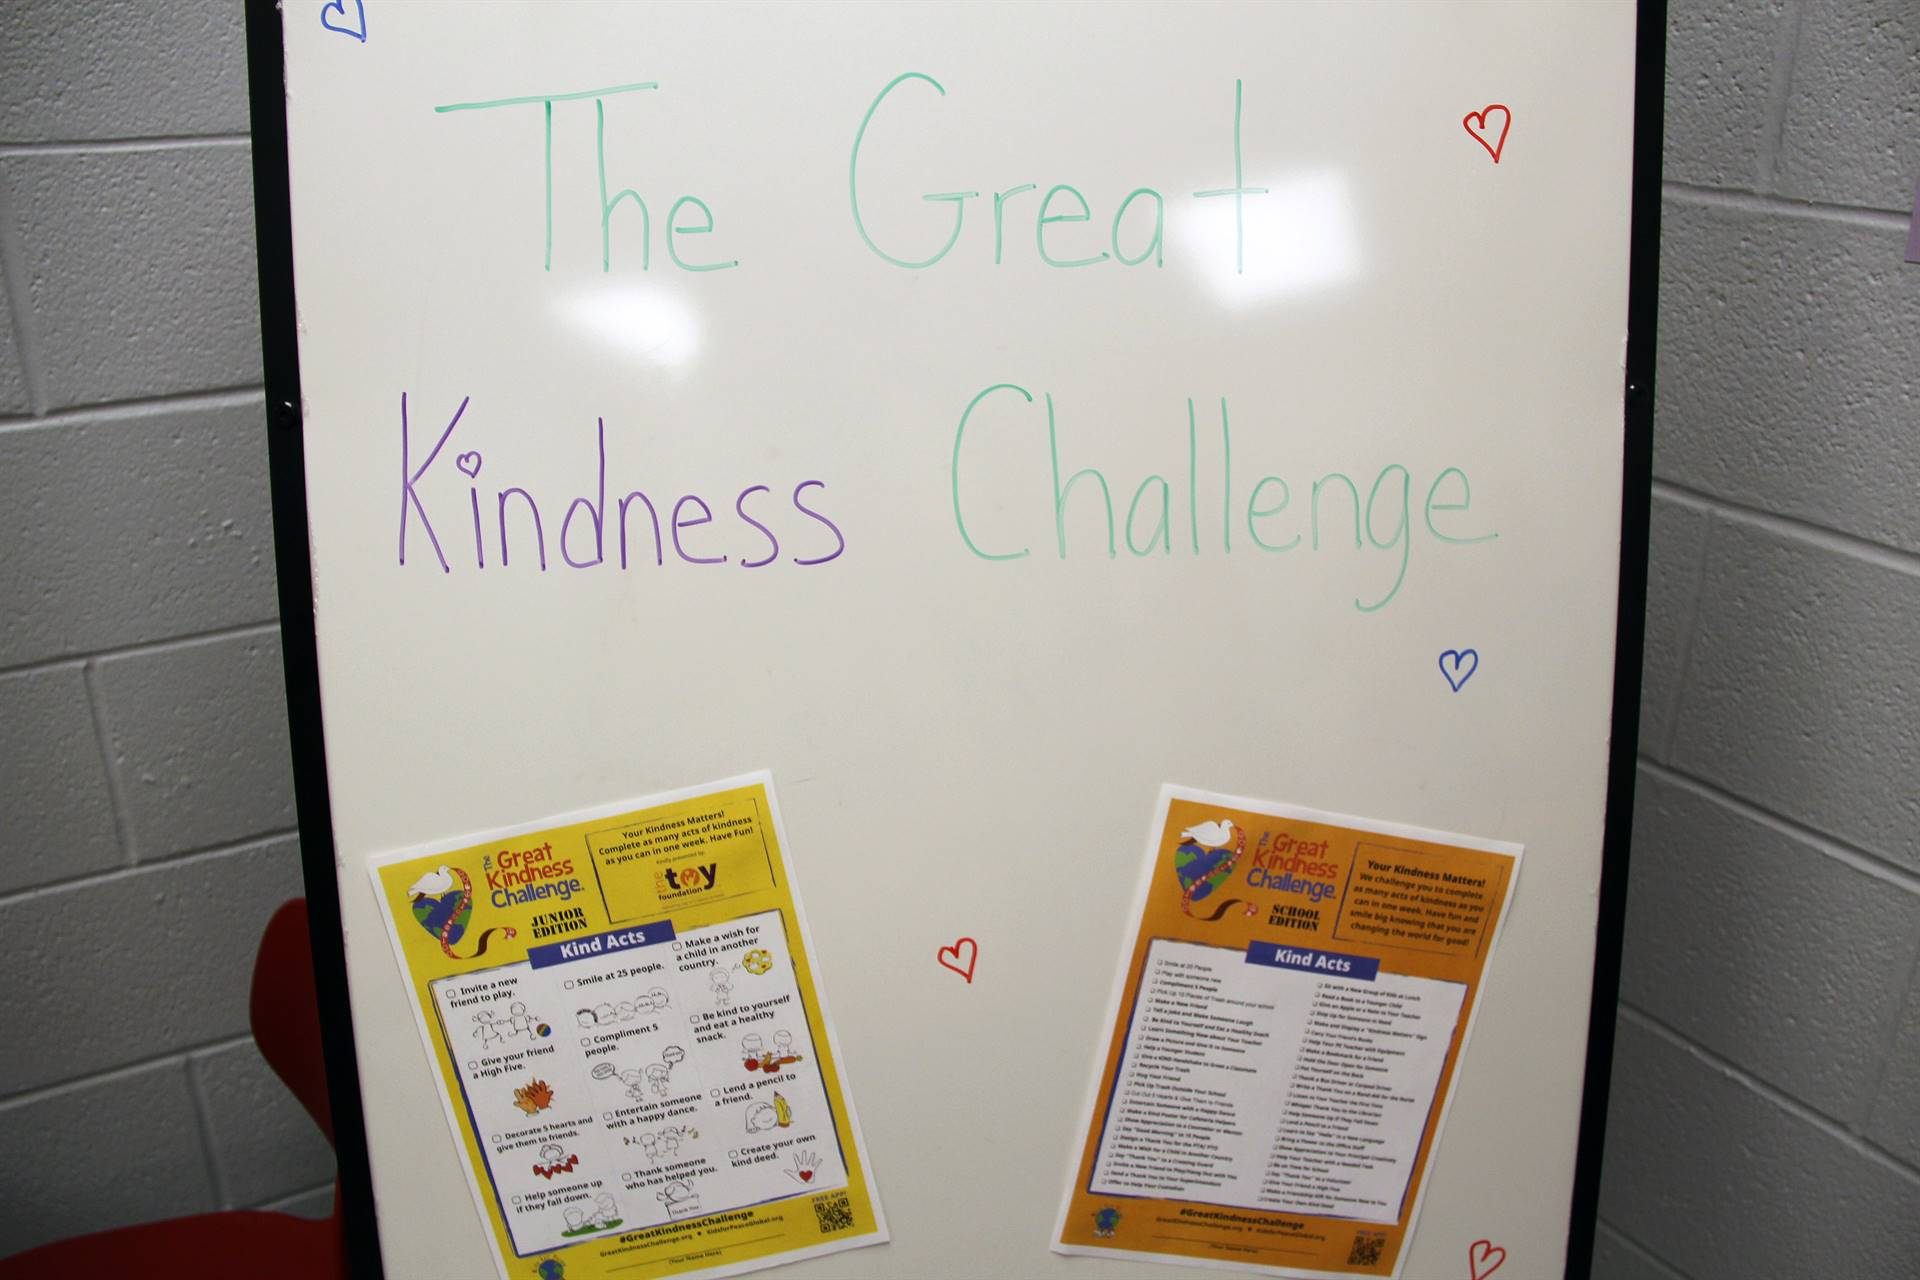 the great kindness challenge sign